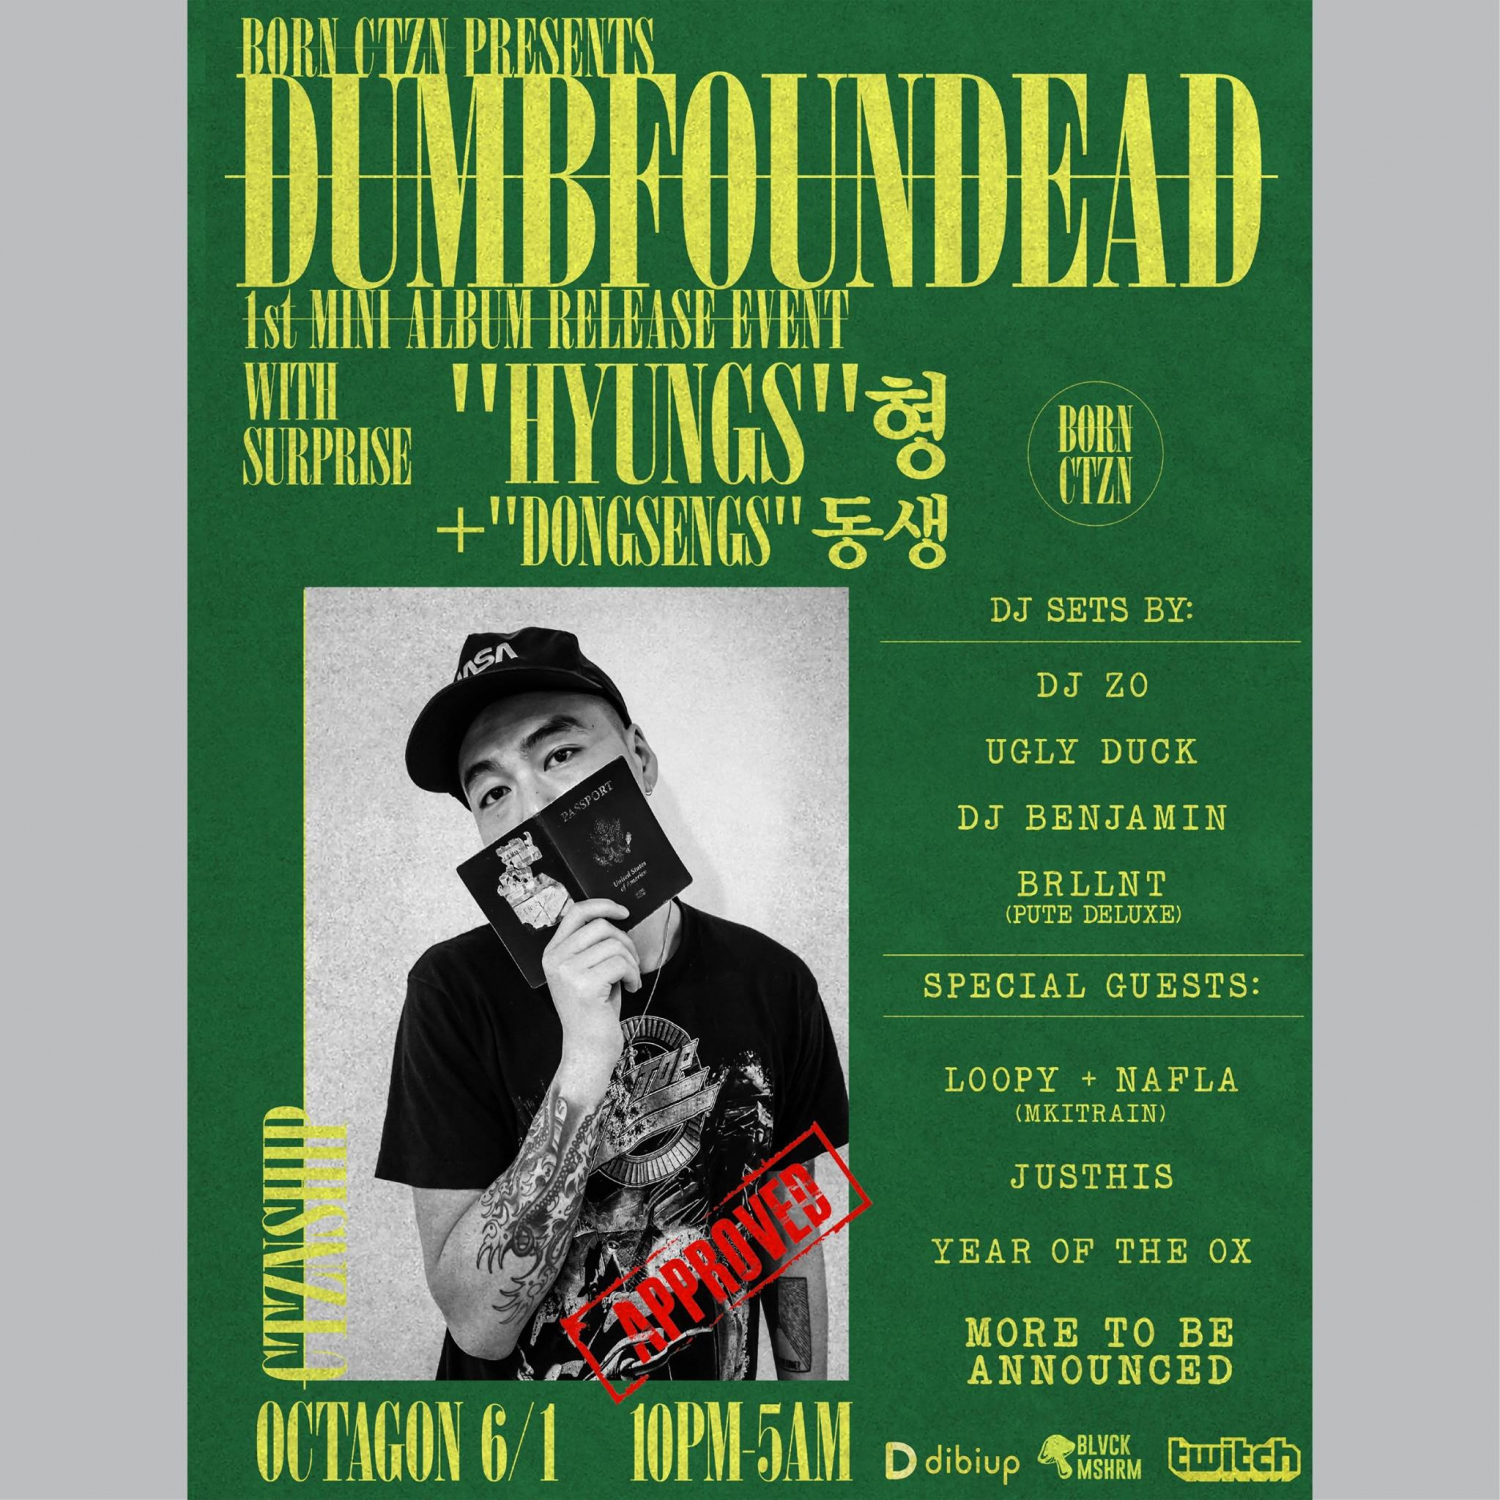 BORN CTZN Presents Dumbfoundead 1st Mini Album Release Party